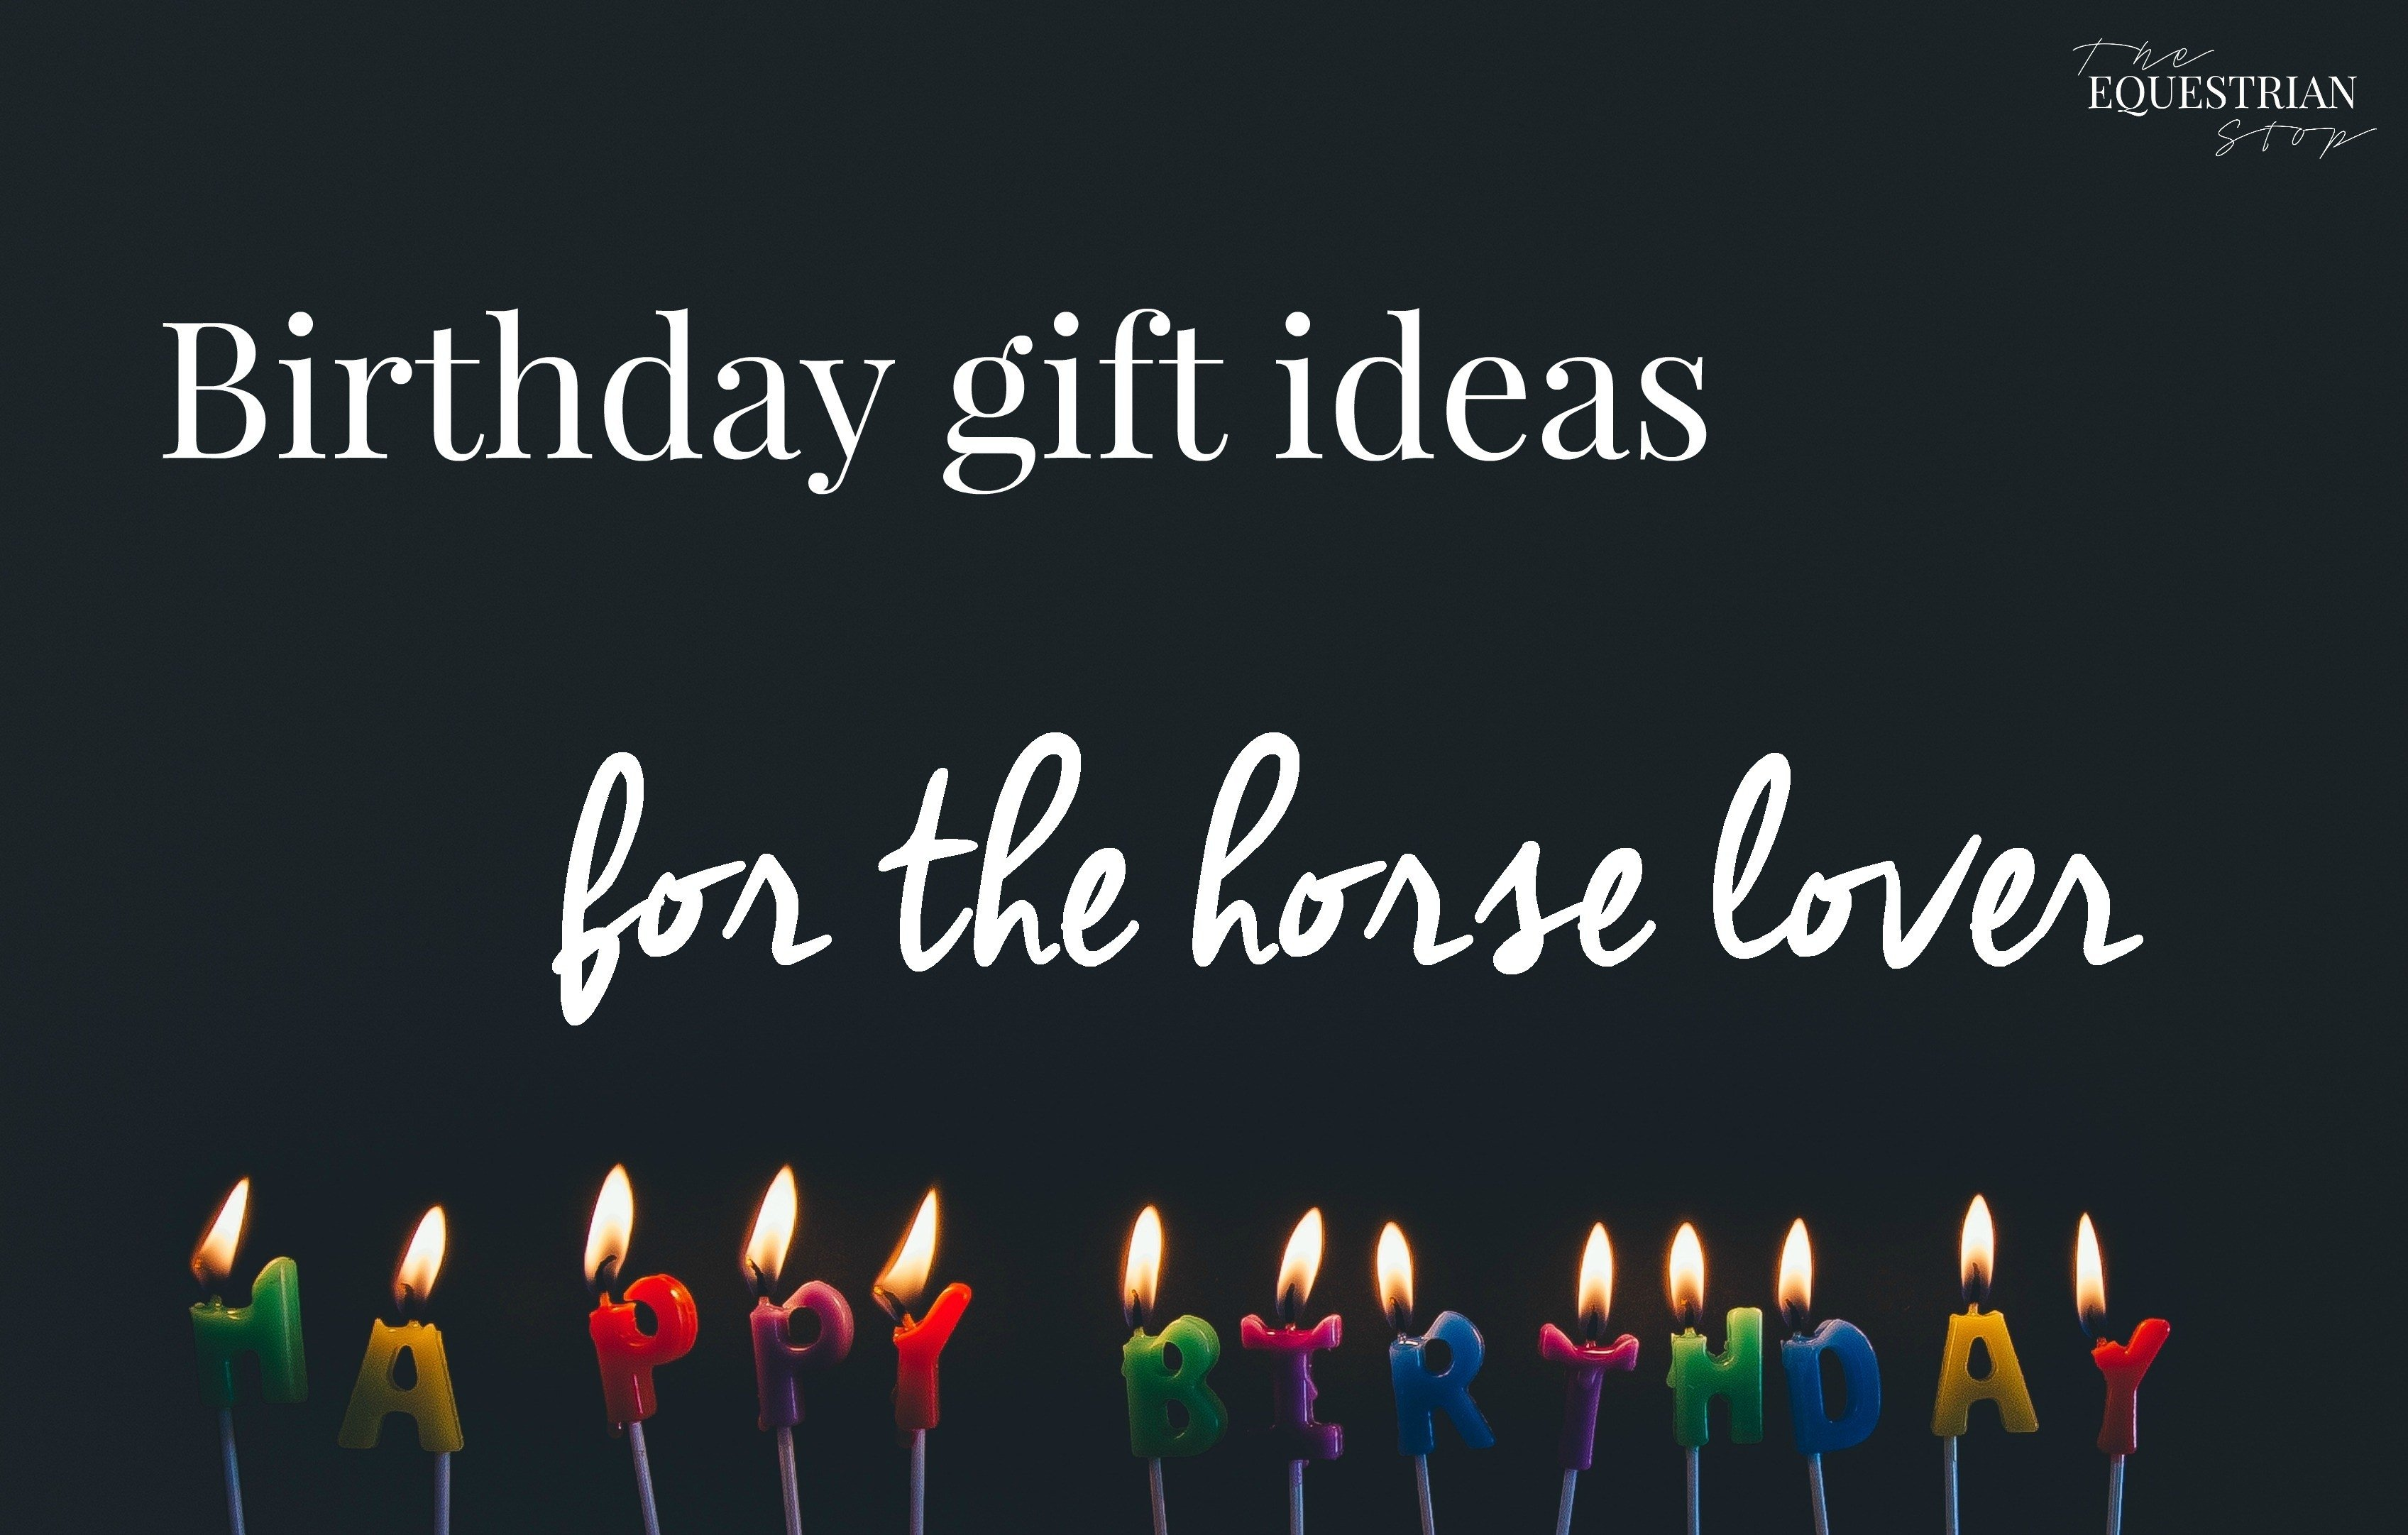 10 Famous Gift Ideas For Horse Lovers birthday gift ideas for the horse lover